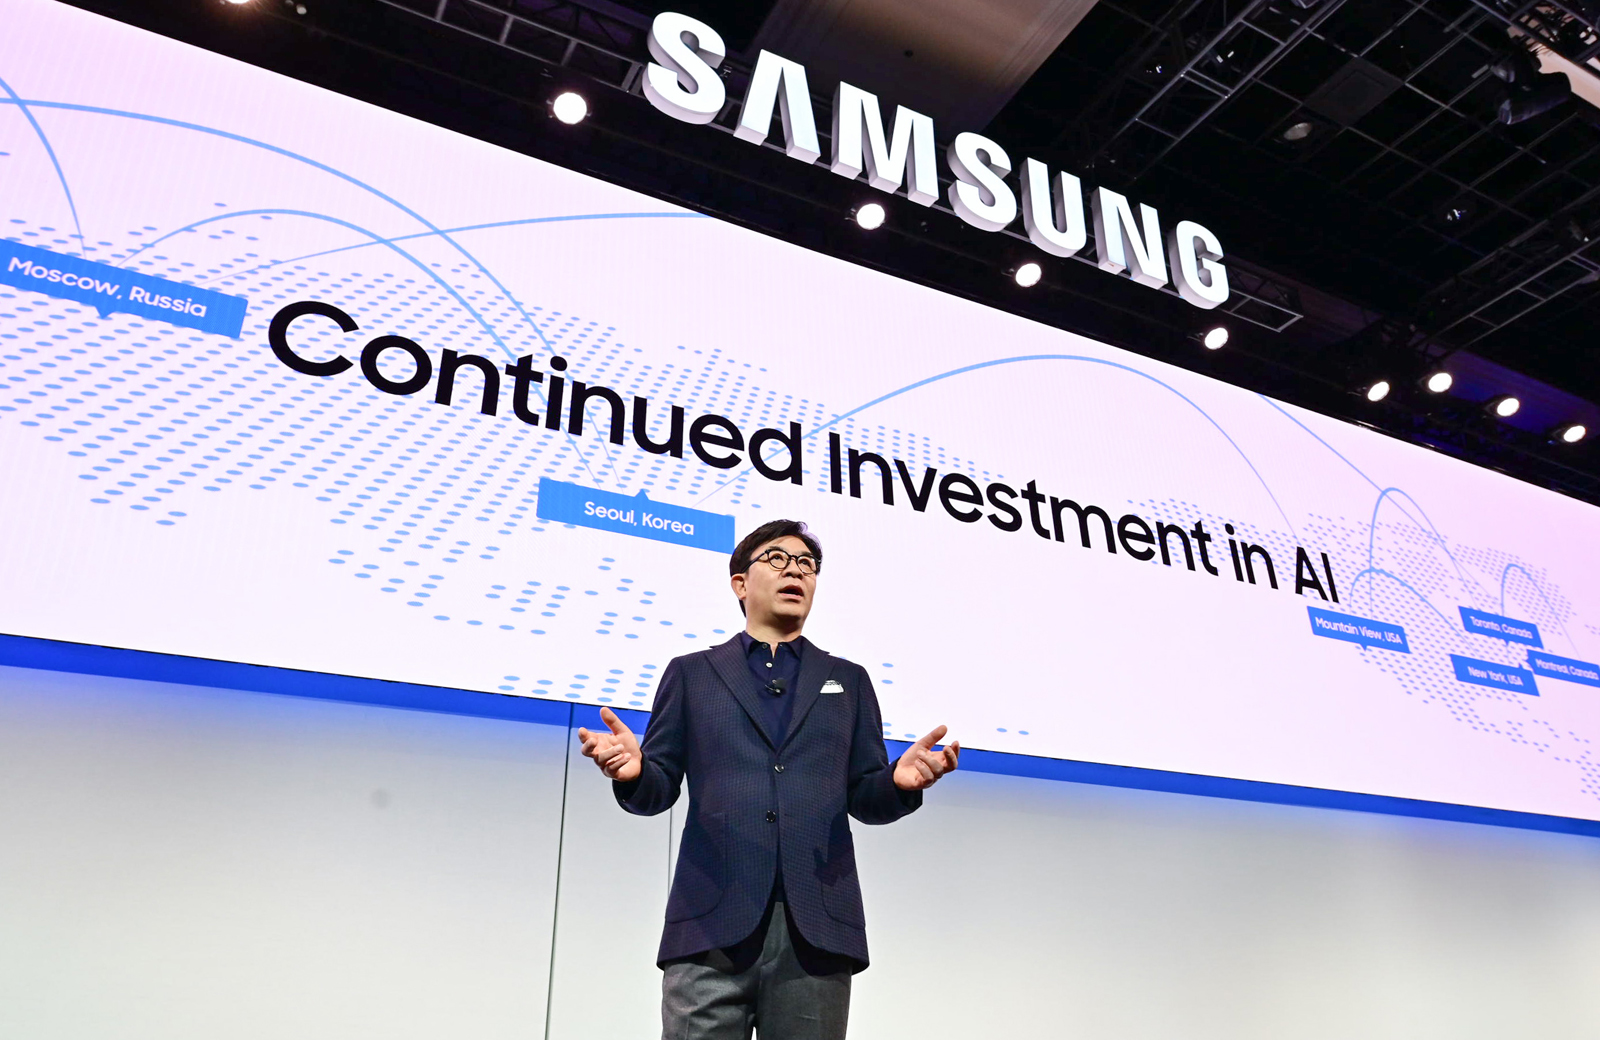 Sforum - Latest technology information page Samsung-AI Samsung has the third largest number of patents in the world, just behind IBM and Microsoft.